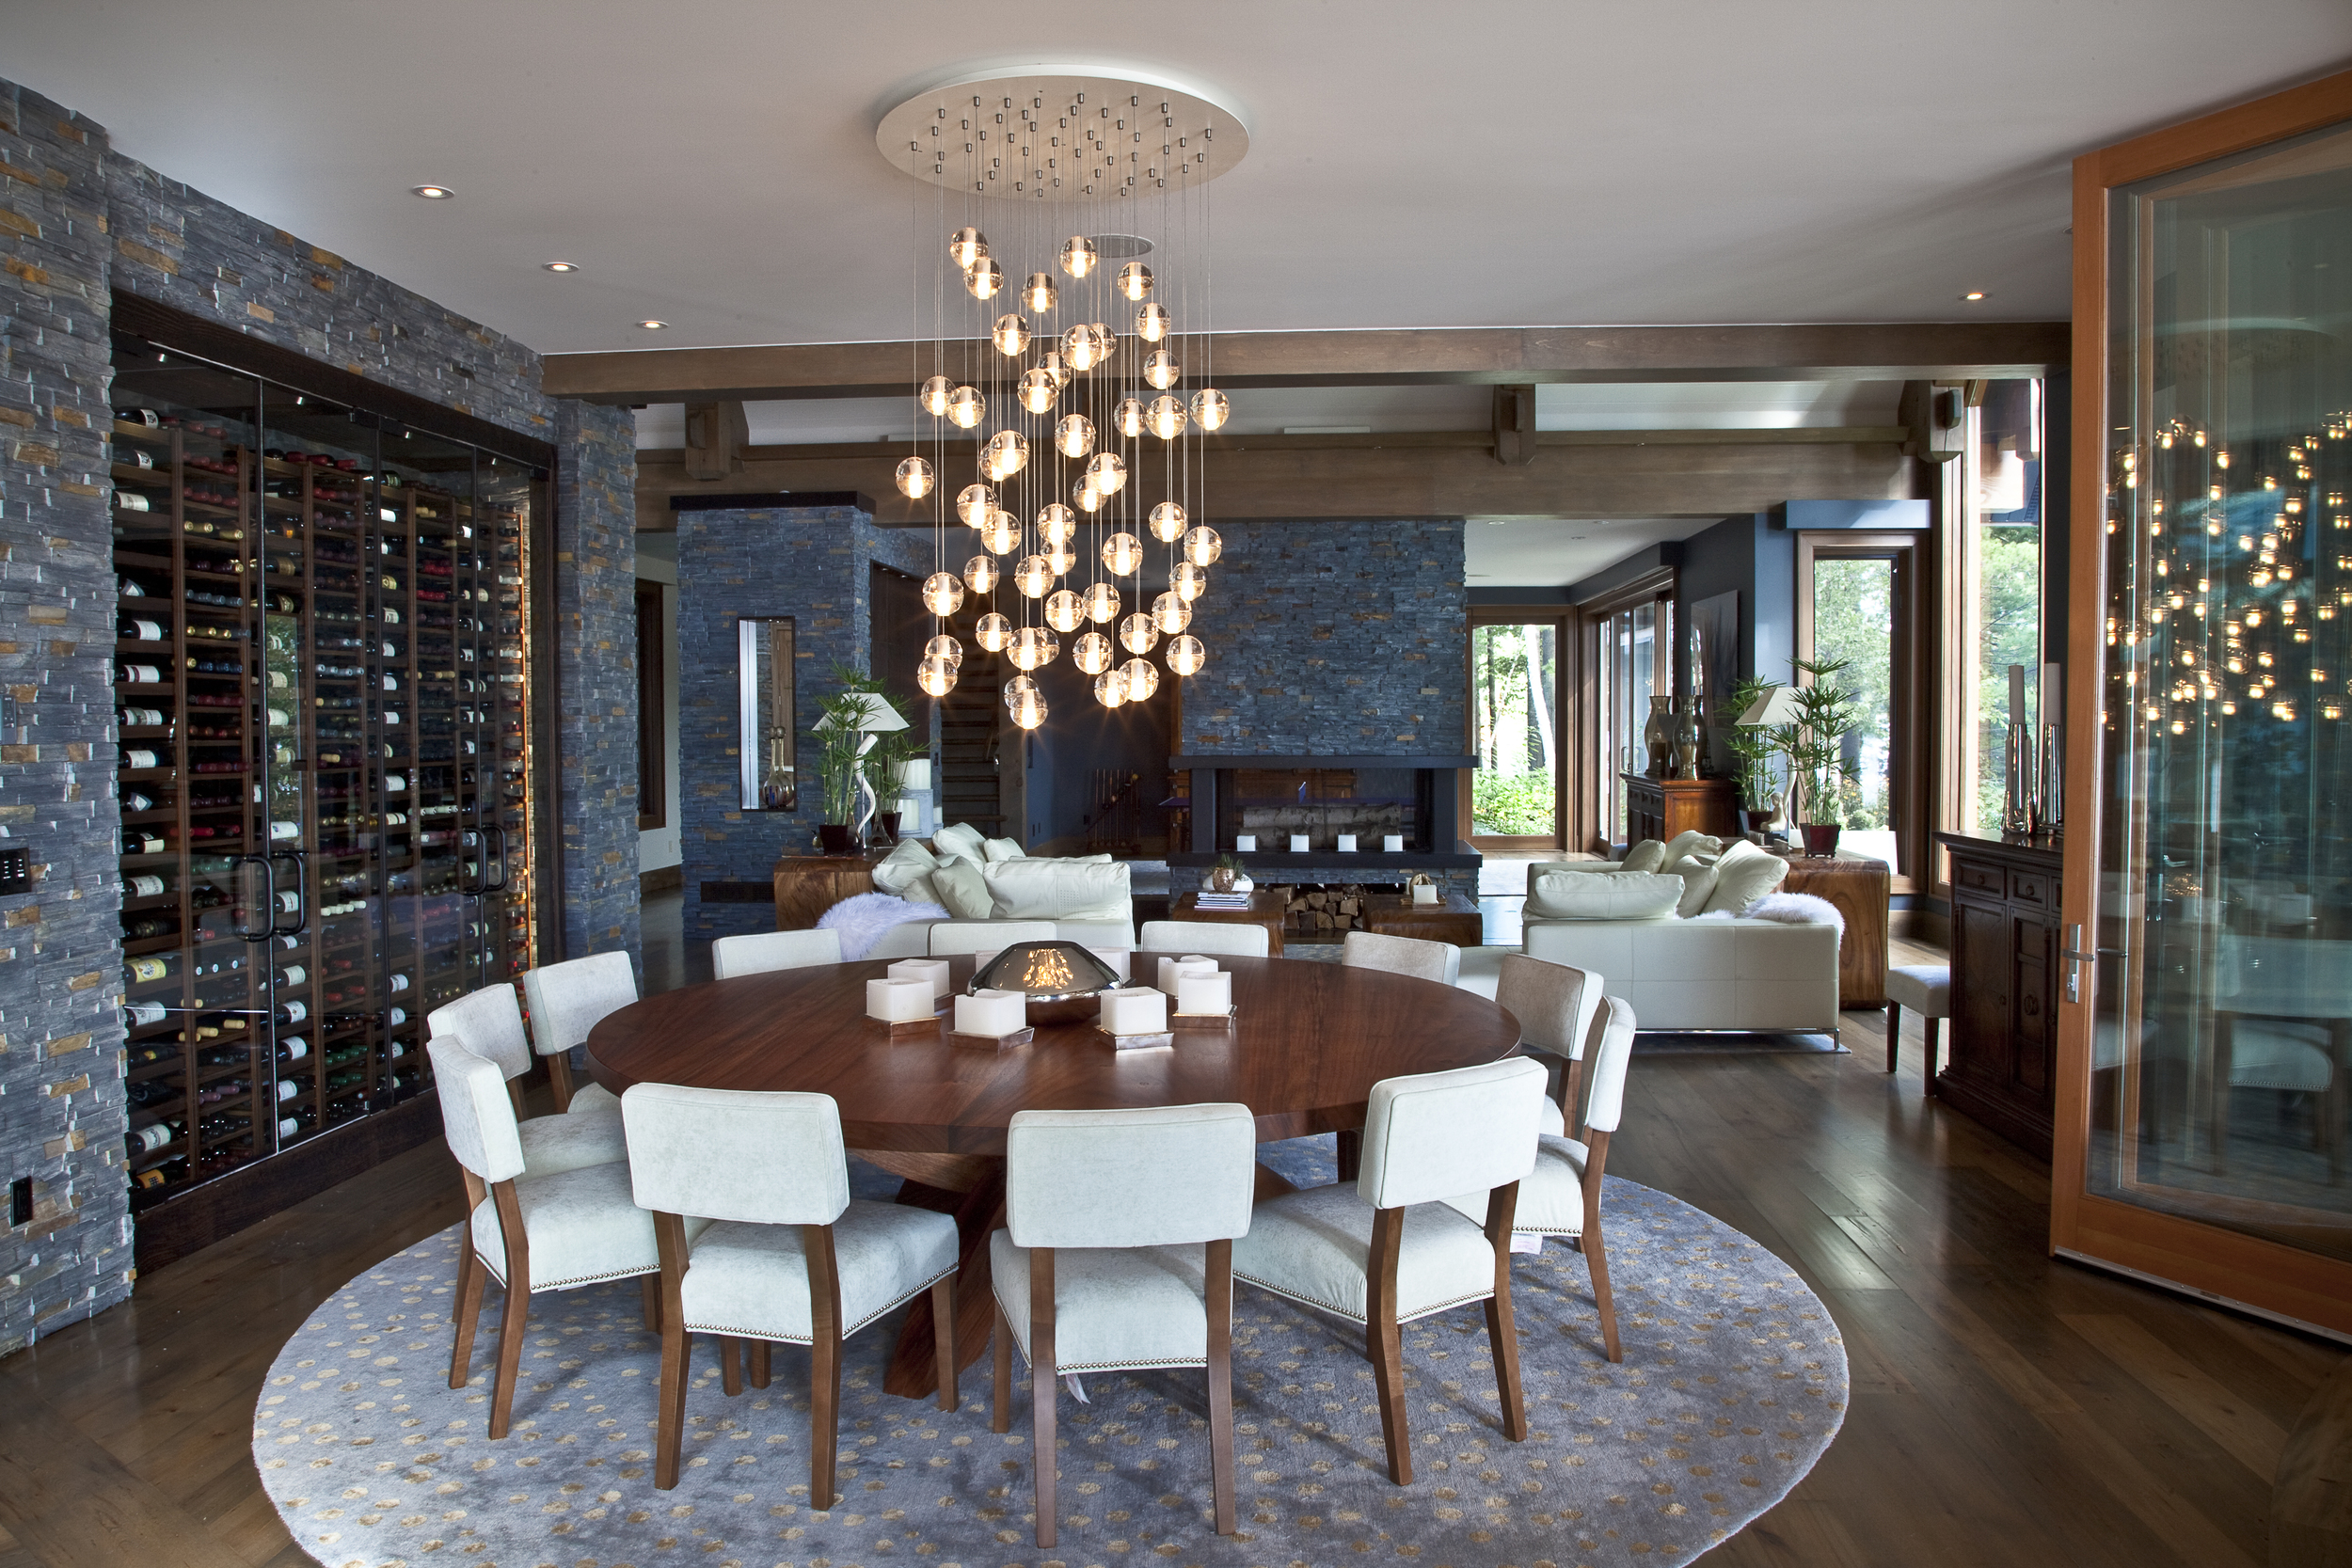 dining room with light bulb chandelier above a wooden table and dining chairs